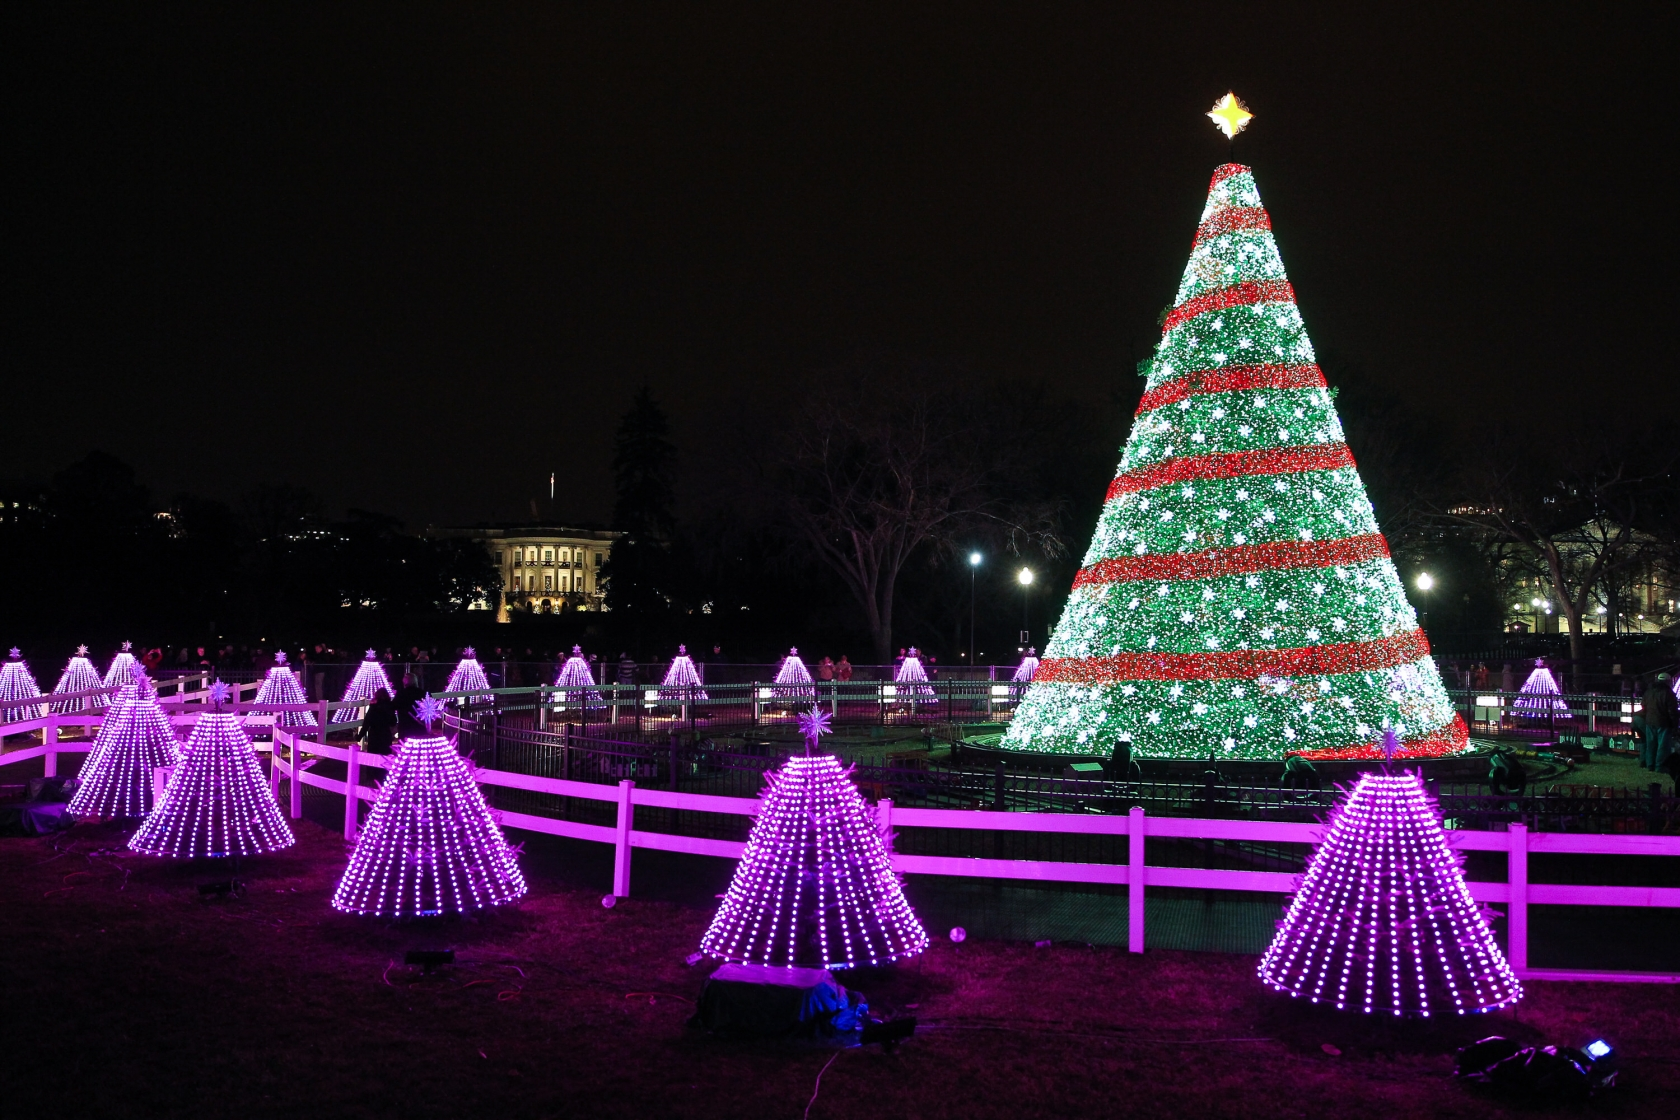 Red and green lit National Christmas Tree surrounded by short purple-lit evergreen trees at President's Park